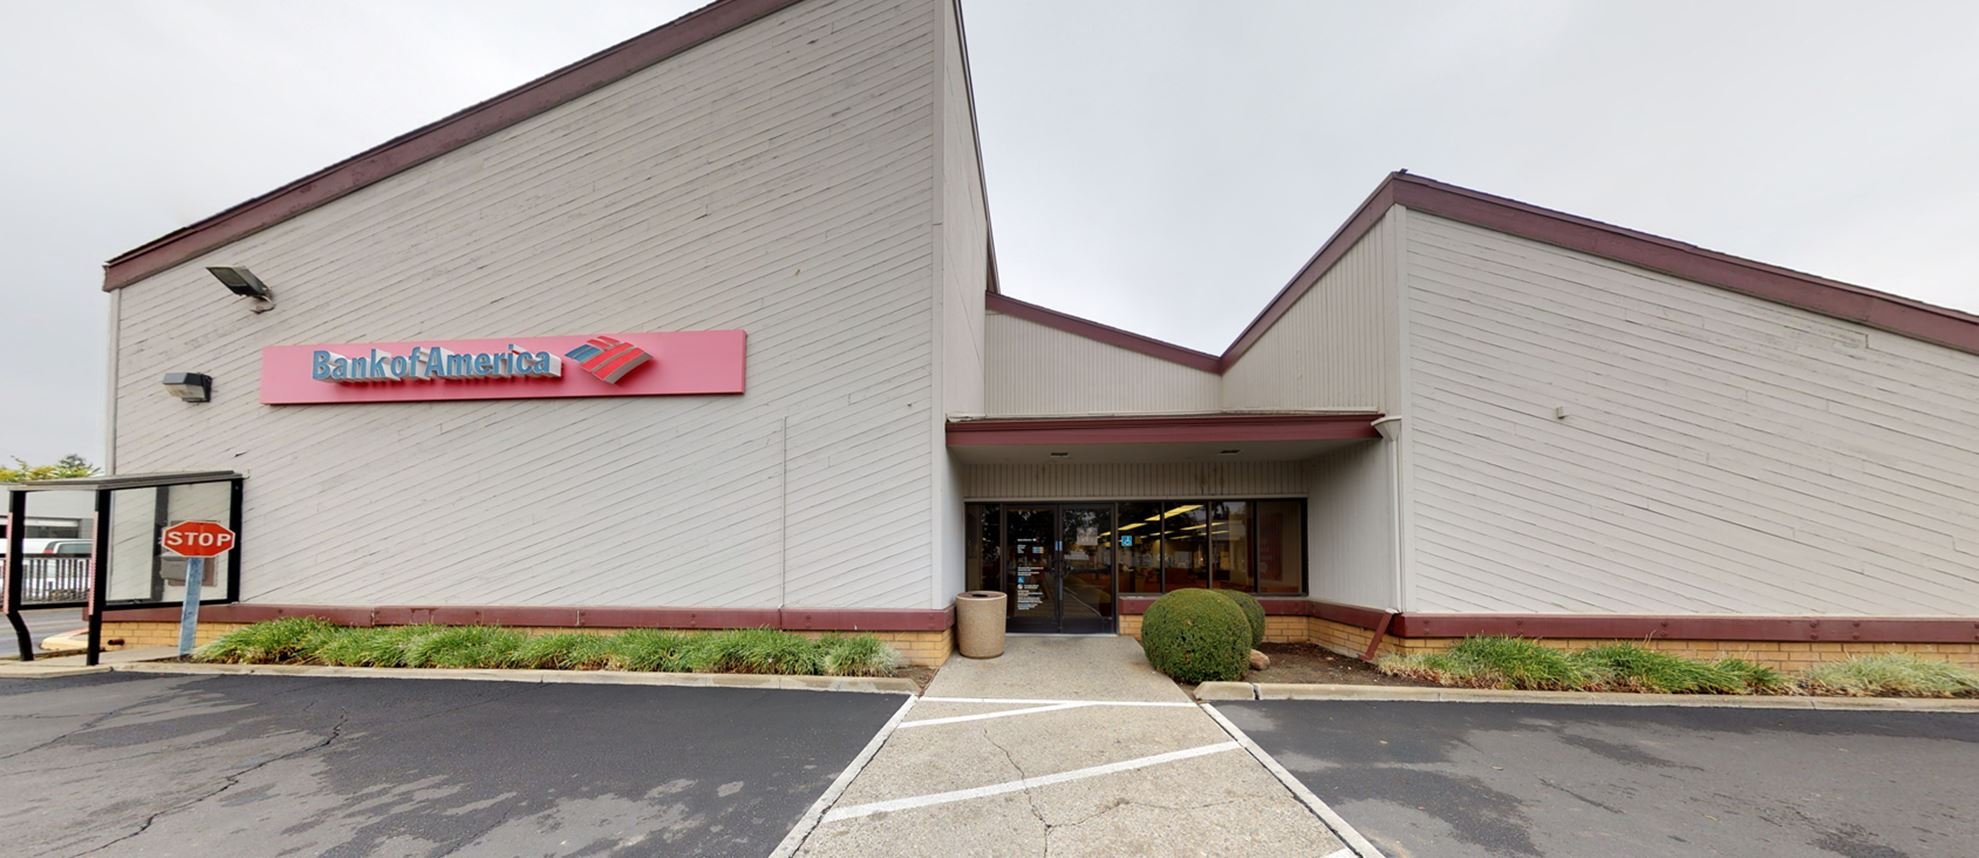 Bank of America financial center with drive-thru ATM | 50 W Main St, Woodland, CA 95695